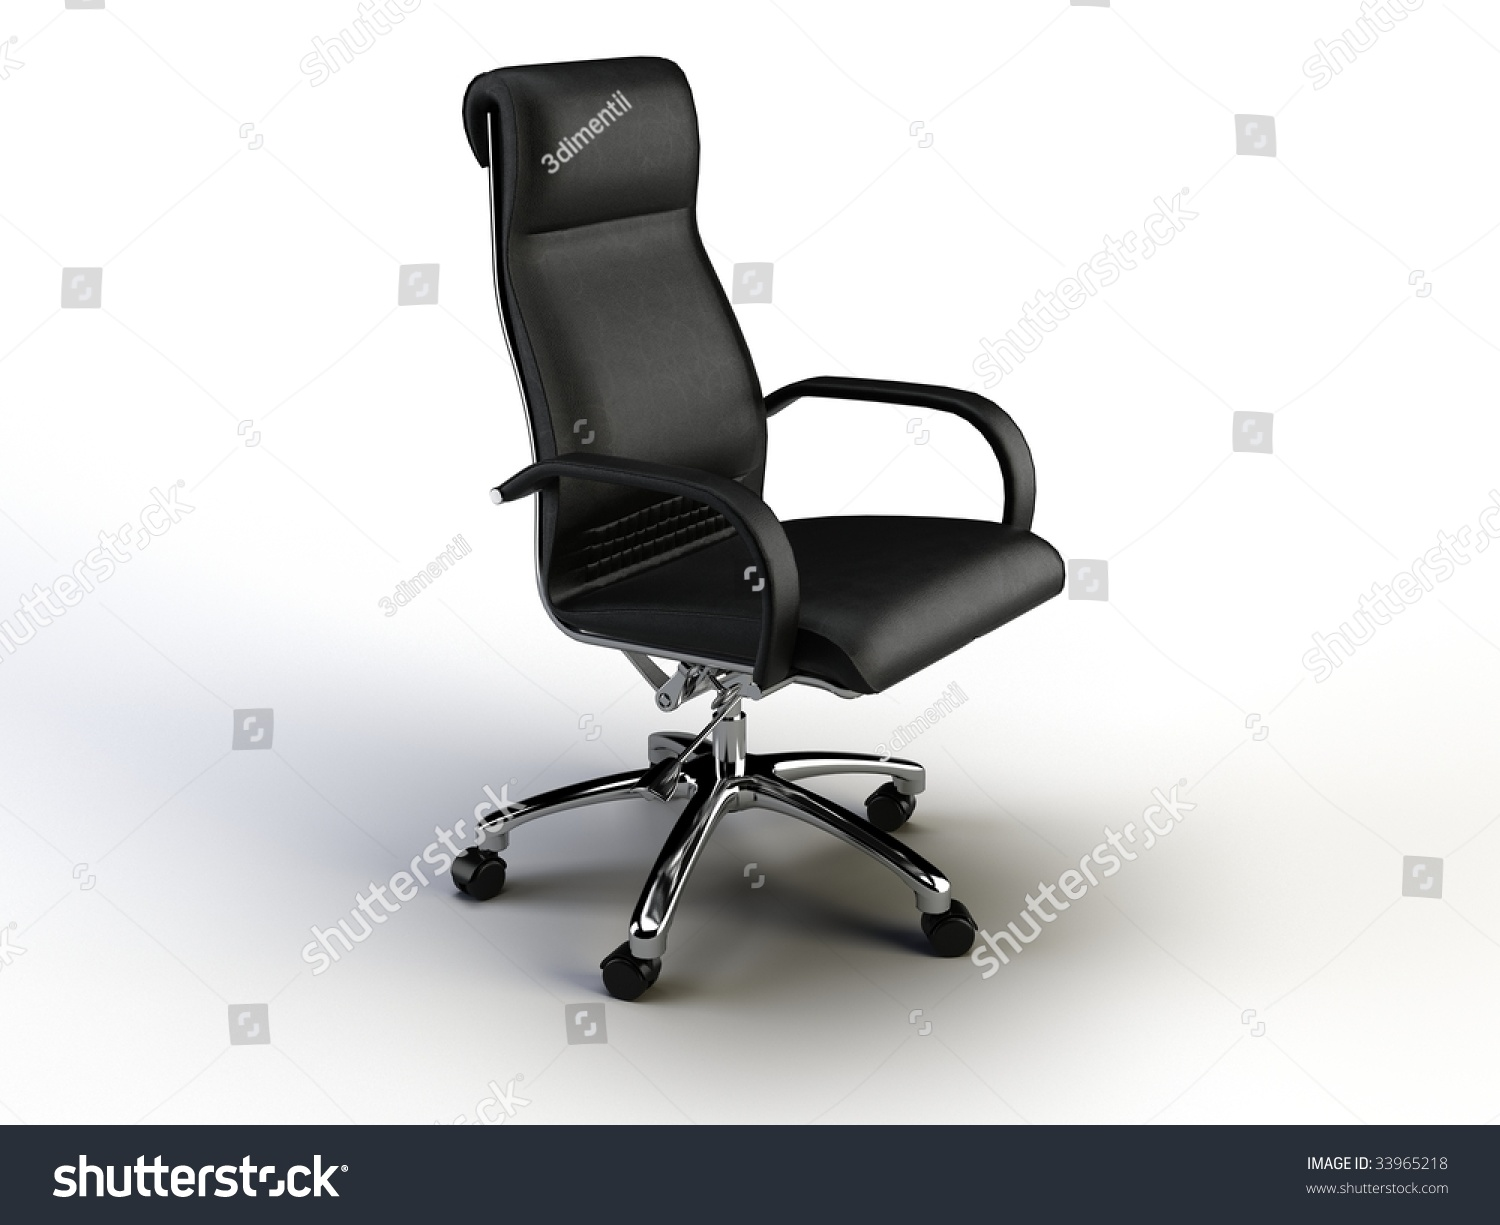 office chair illustration bar stool seat covers on white background stock